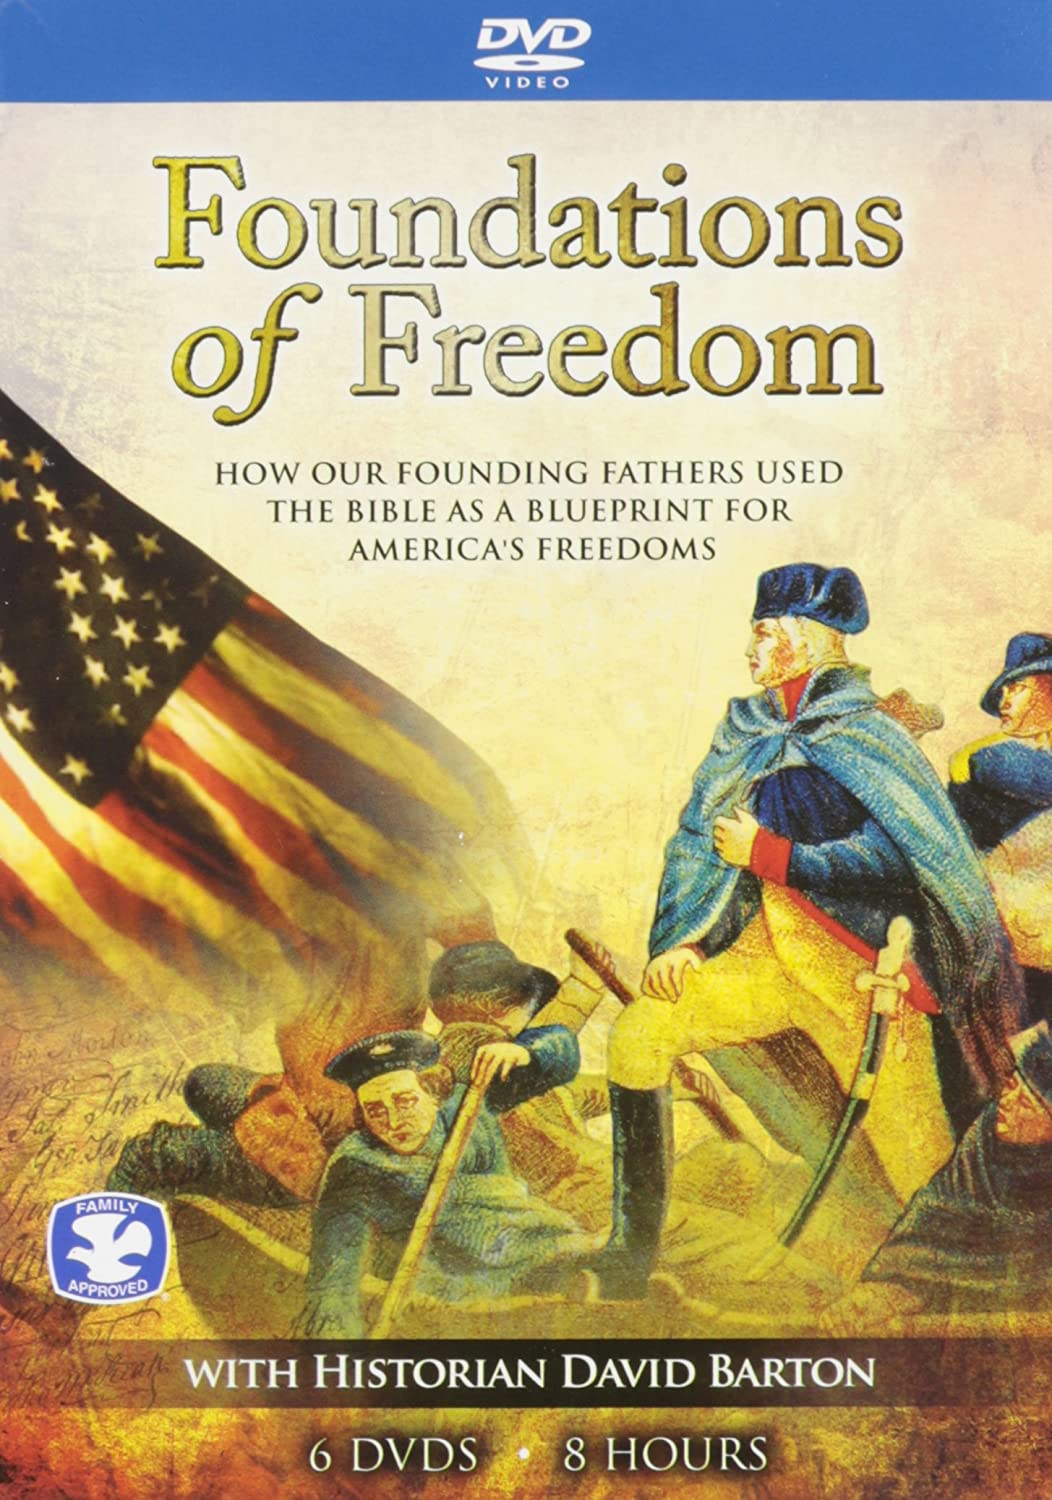 Amazon com: Foundations of Freedom: David Barton, Michele